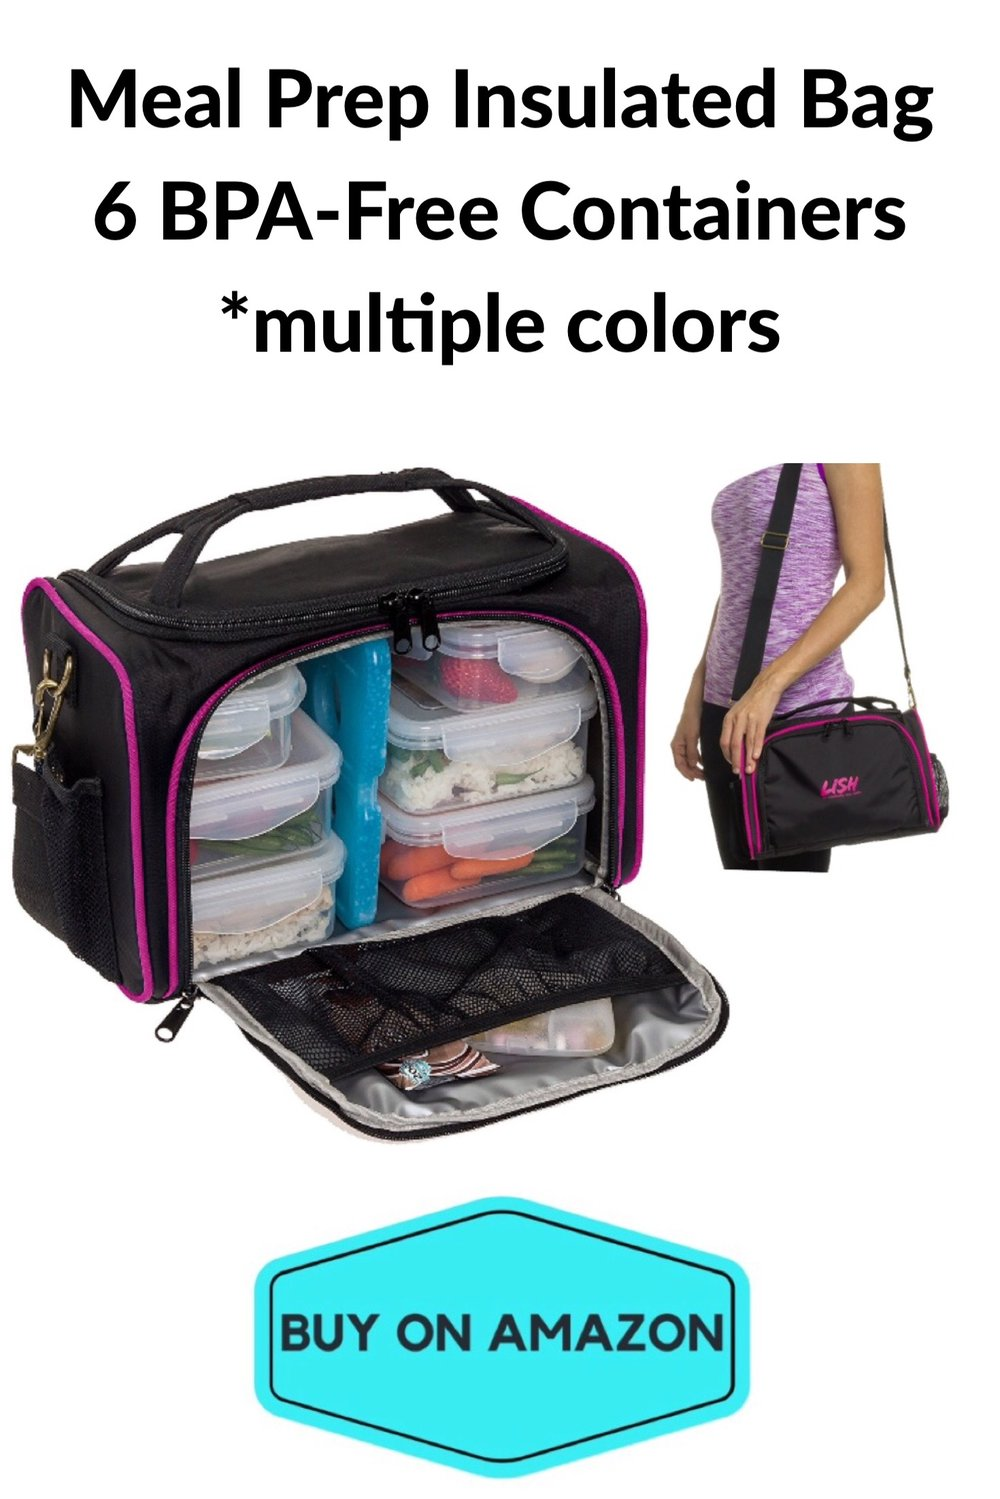 Meal Prep Insulated Bag